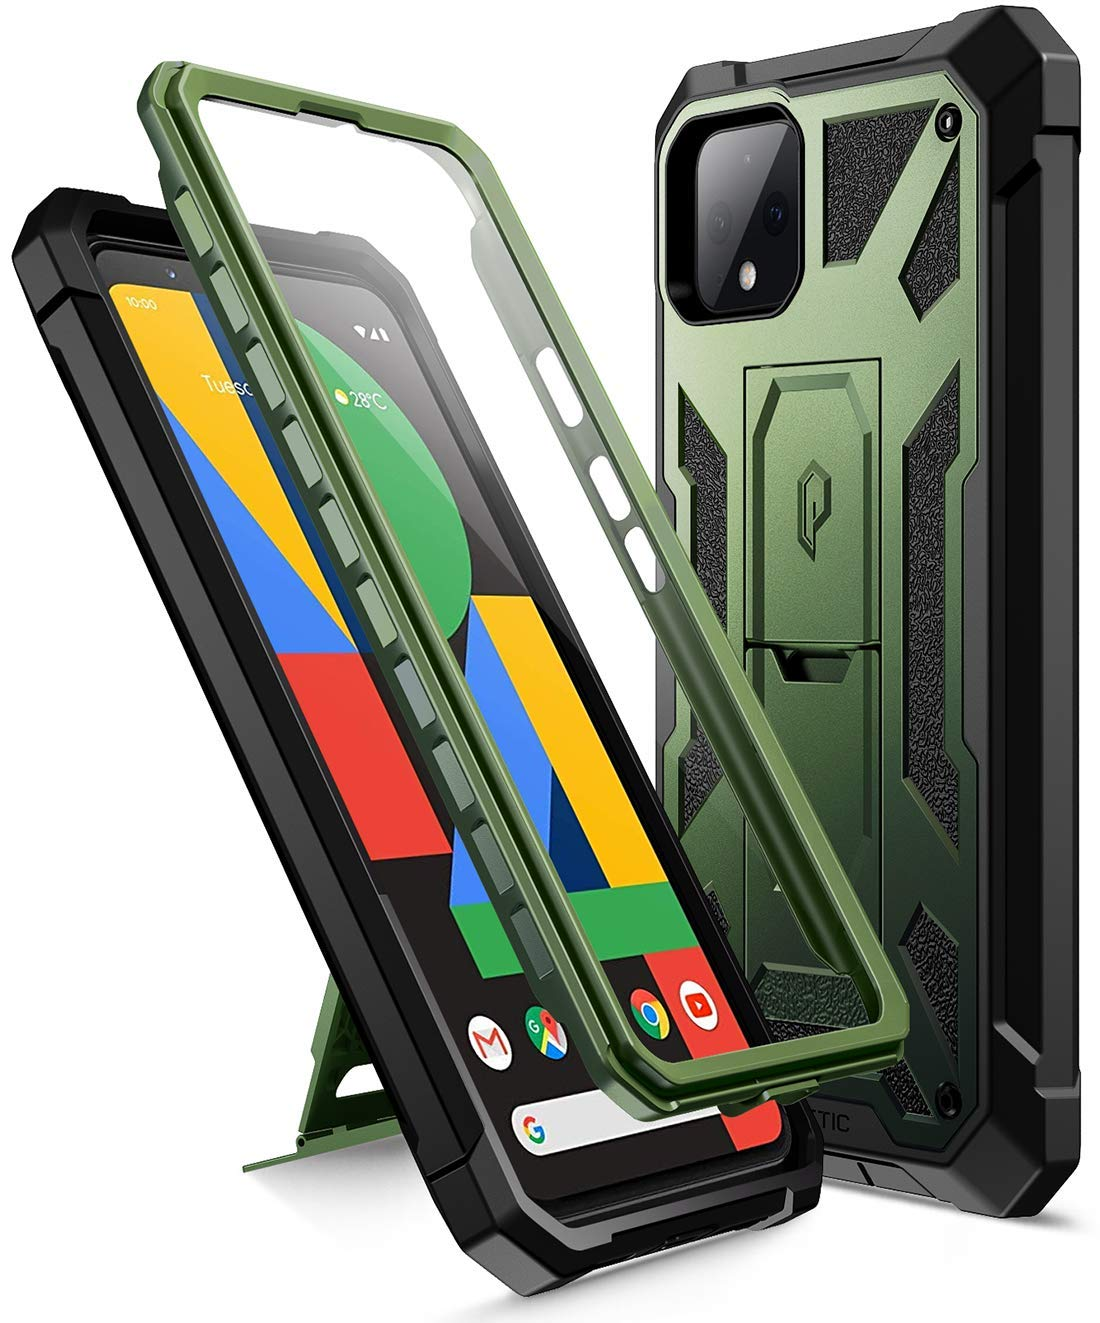 Poetic Spartan Series Designed for Google Pixel 4 5.7 inch Case, Full-Body Rugged Dual-Layer Metallic Color with Premium Leather Texture Shockproof Protective Cover with Kickstand, Metallic Green